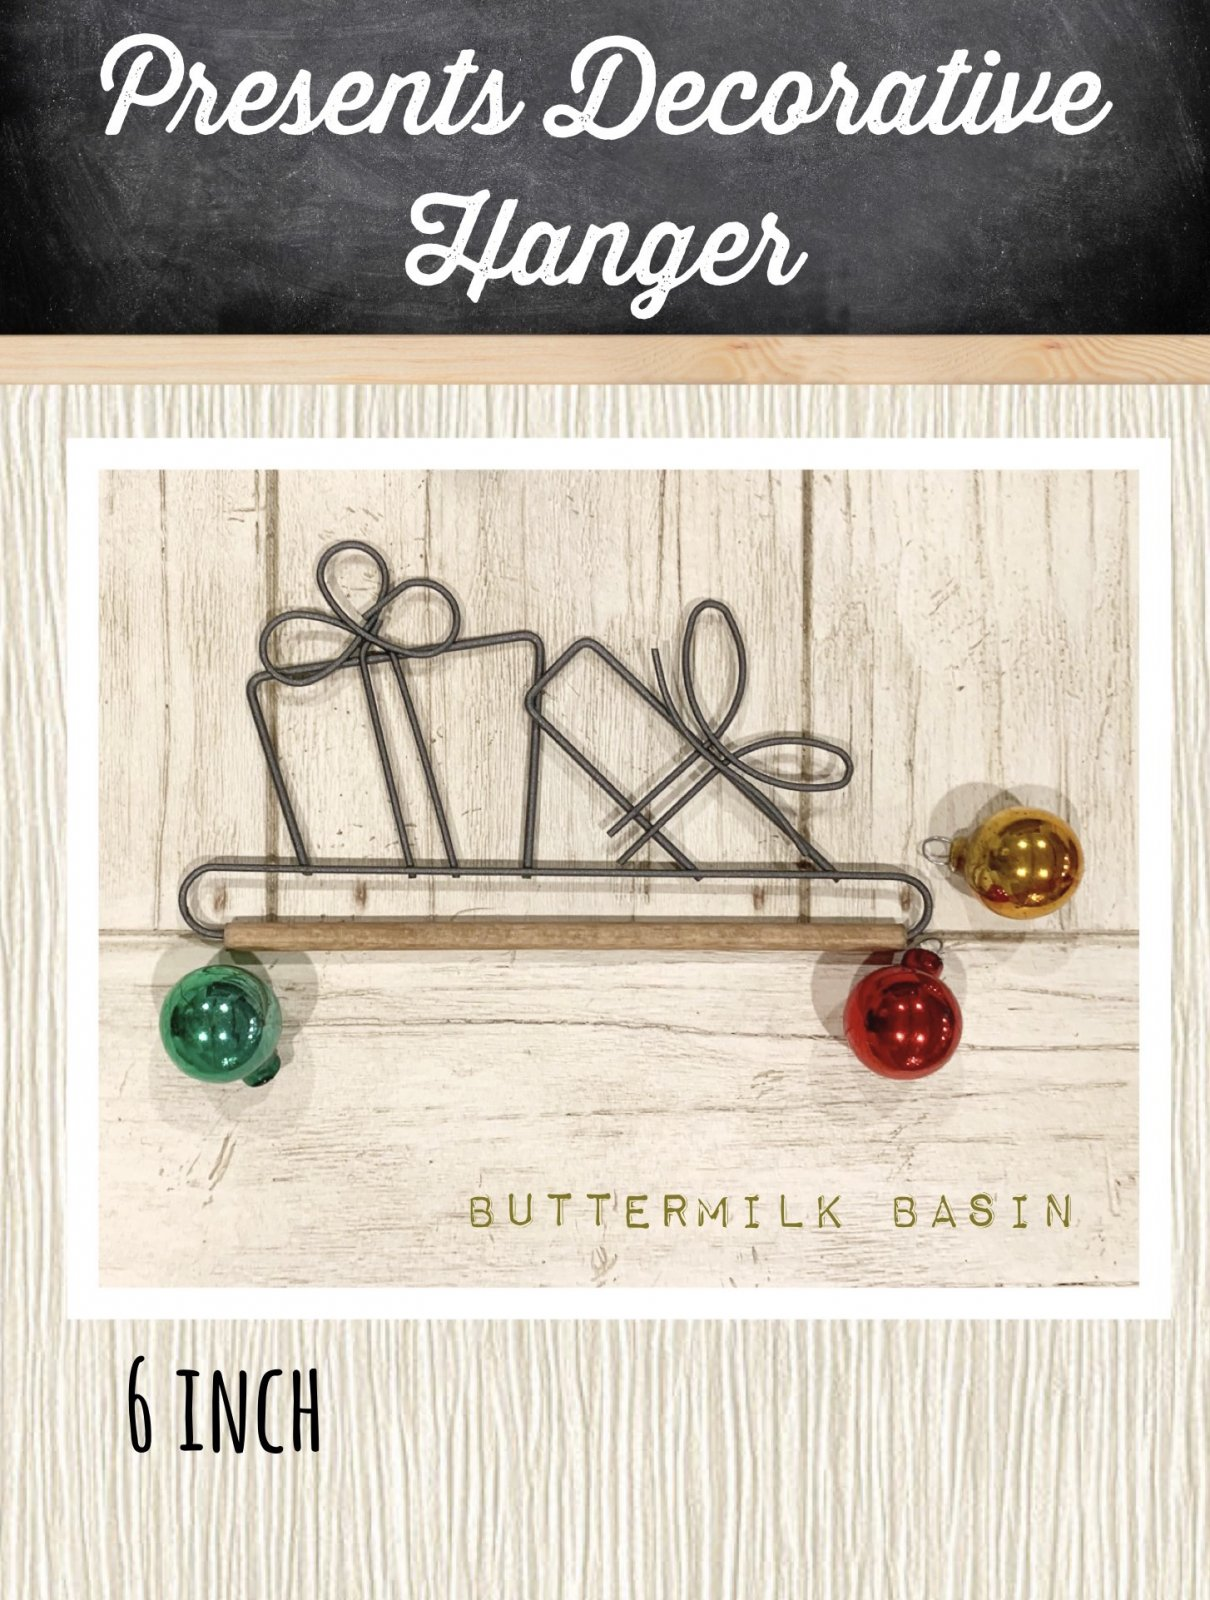 Presents Decorative Hanger